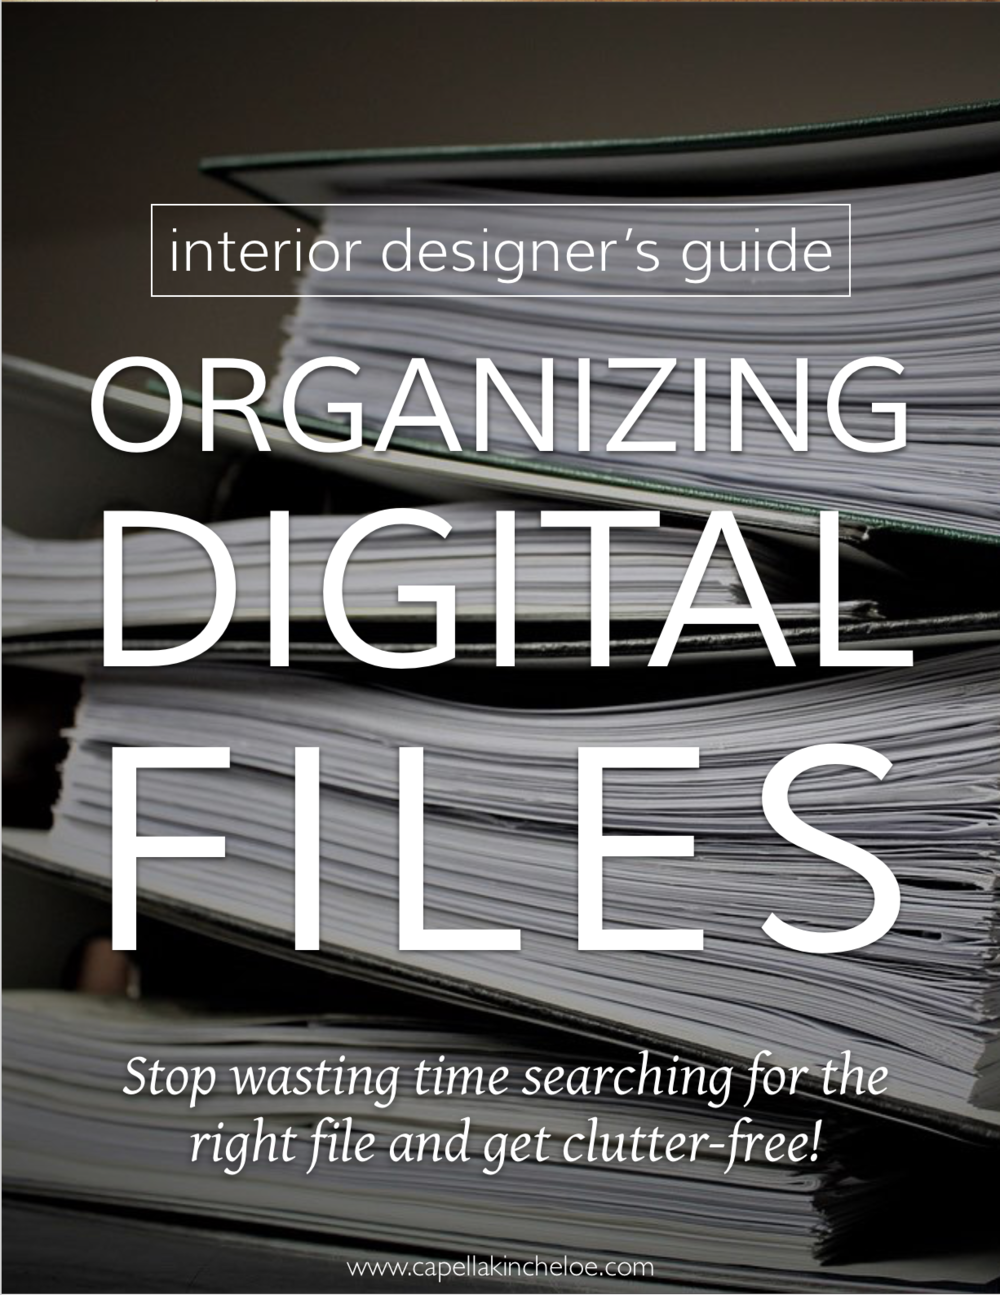 The Interior Designer's Guide to organizing your digital files.  Stop wasting time searching for the right file and get clutter-free.